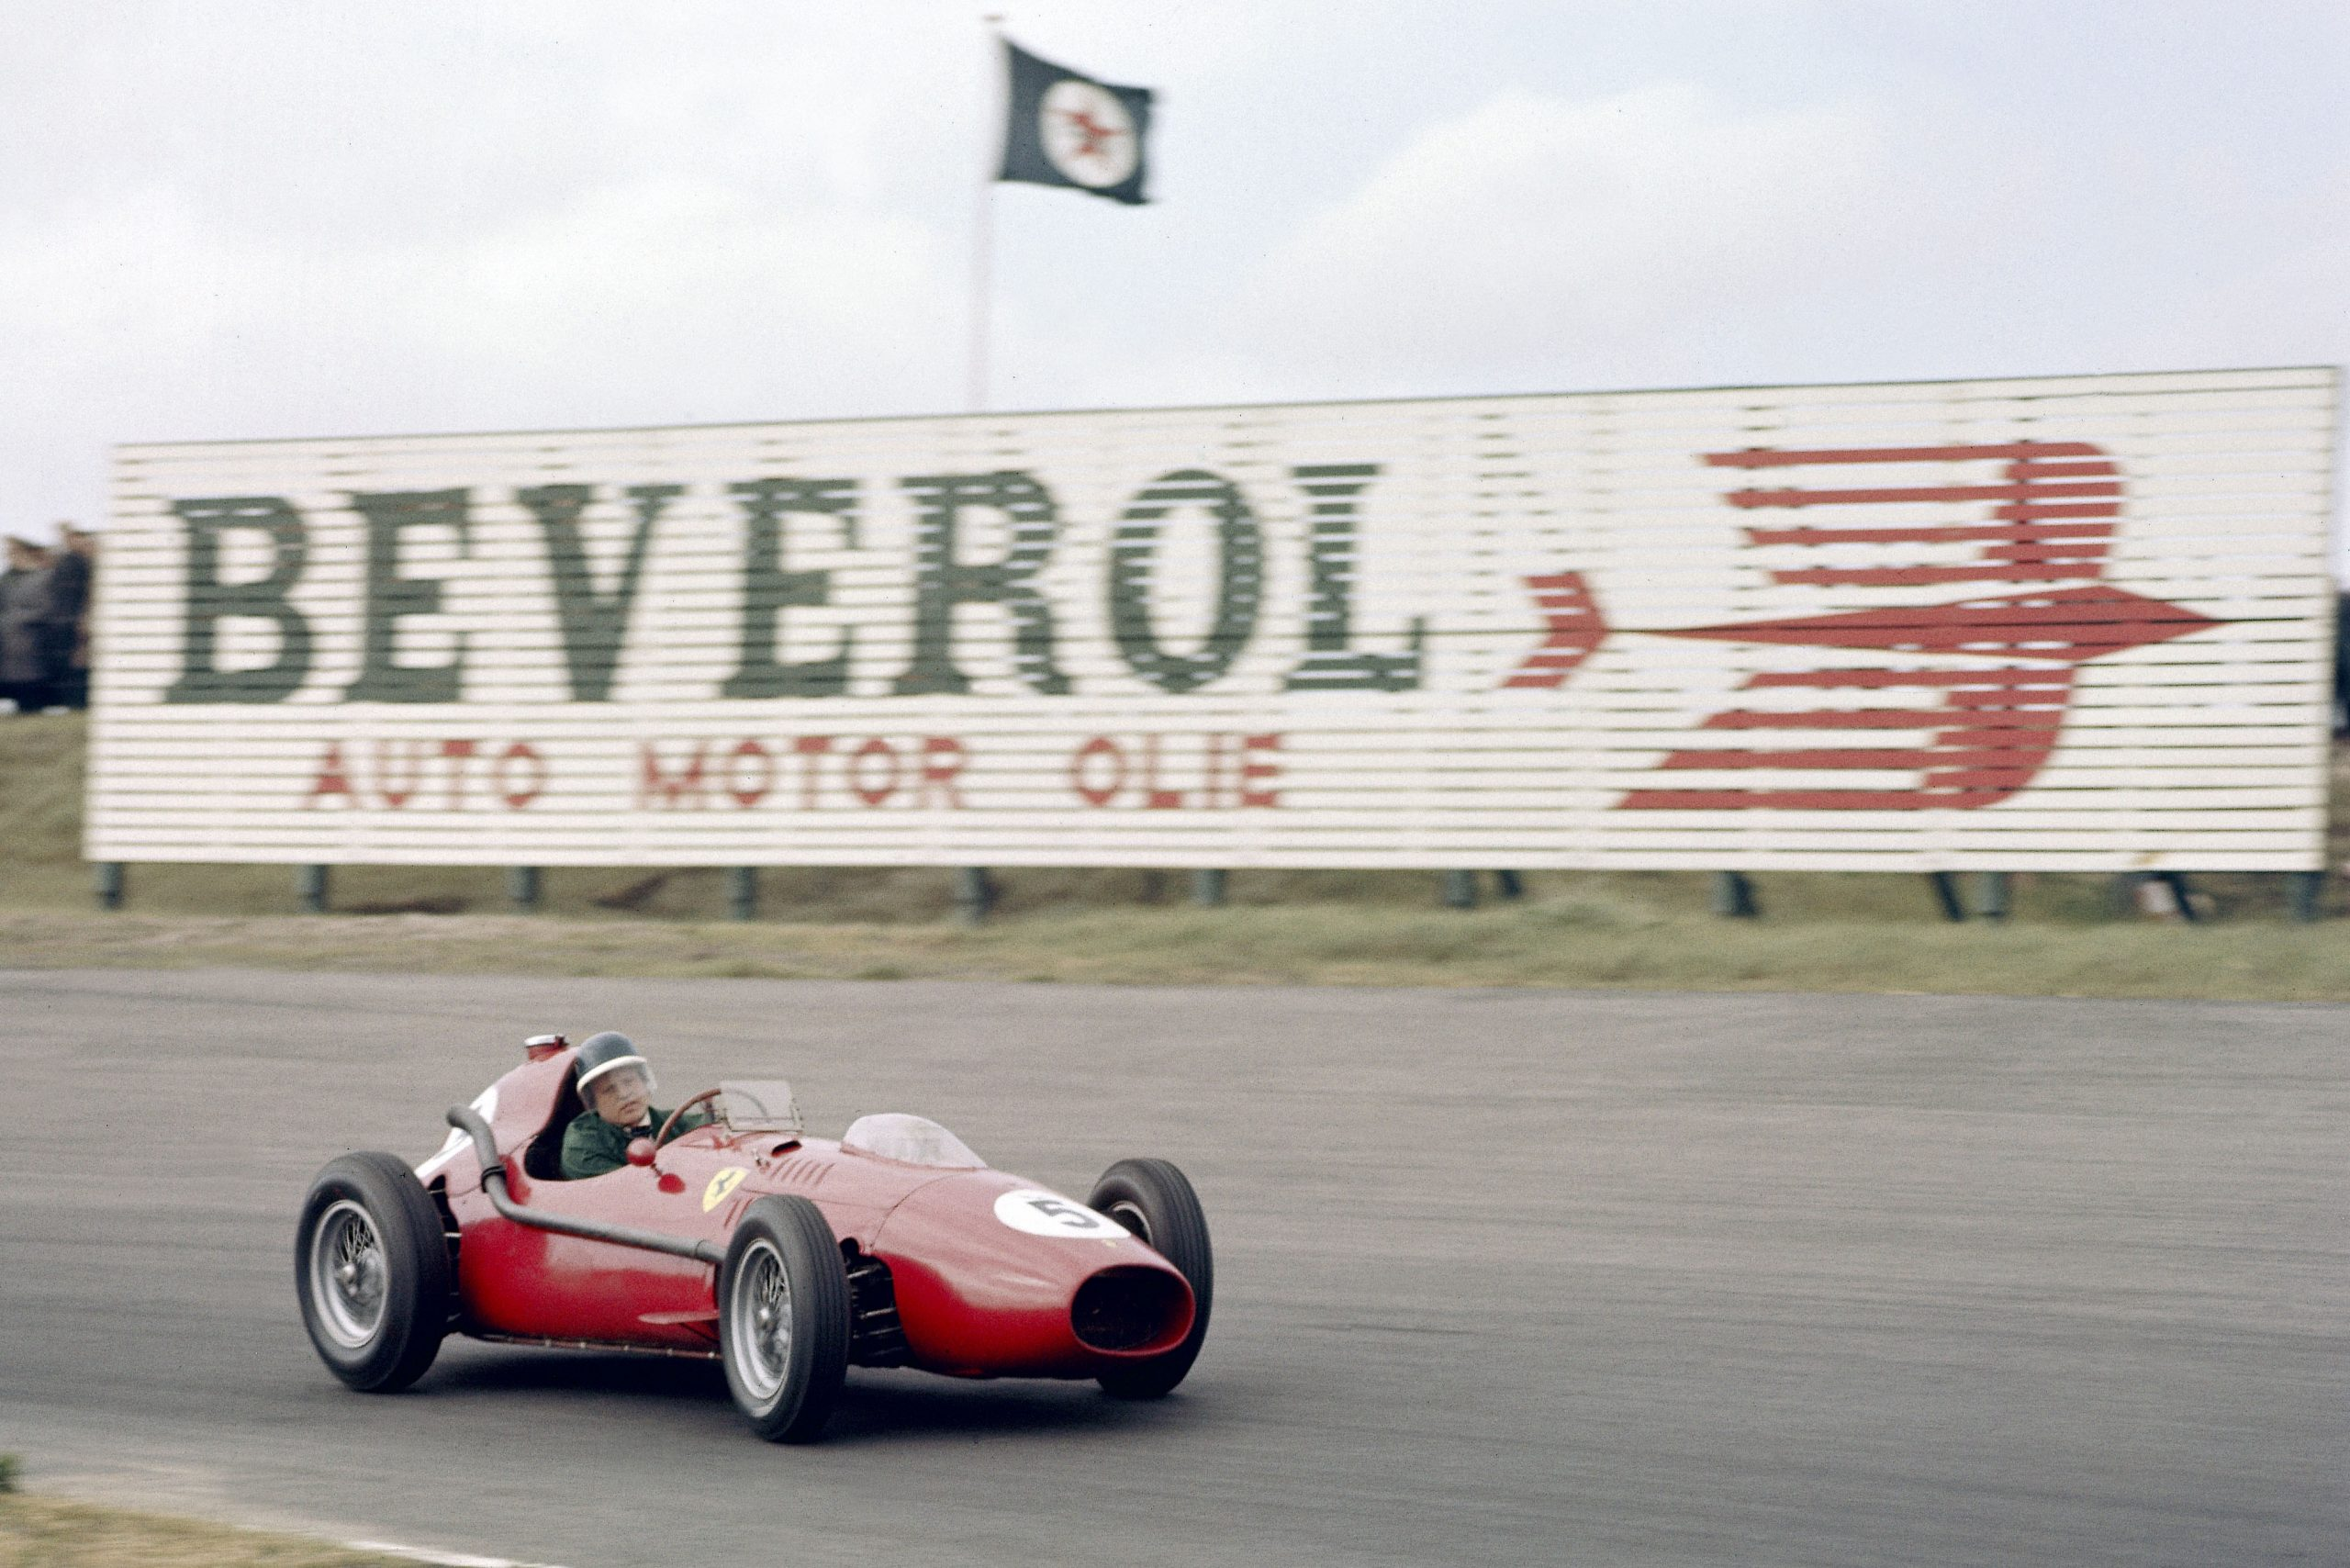 Mike hawthorn piloting his Ferrari D246.